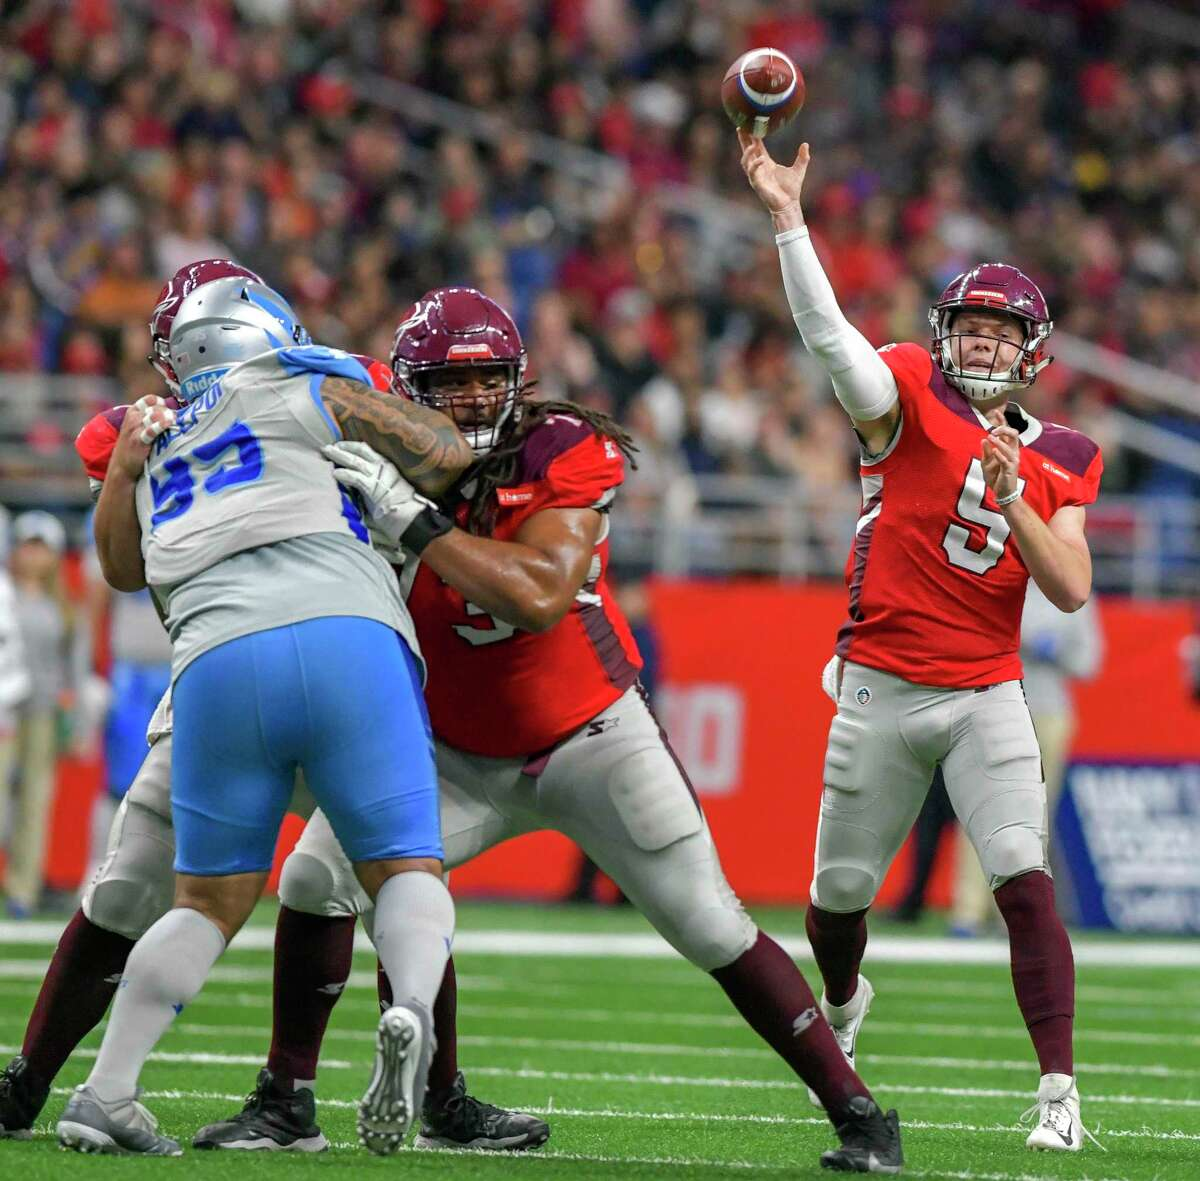 Casino company MGM Resorts International received a San Antonio bankruptcy judge's approval to take title to gaming technology developed by the defunct Alliance of American Football, which shut down in April. Pictured is Logan Woodside (5) during the AAF game between the Salt Lake Stallions and the San Antonio Commanders on March 17 at the Alamodome.